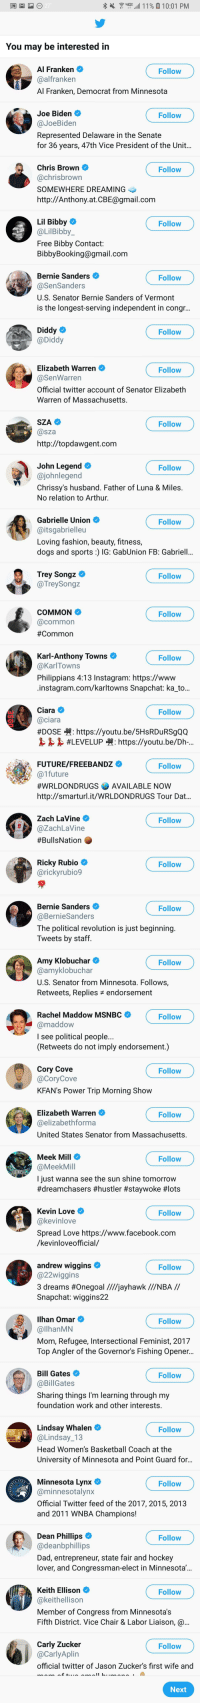 """Arthur, Basketball, and Bernie Sanders: d 11% 0.1001 PM  """"  You may be interested in  Al Franken  Al Franken, Democrat from Minnesota  Joe Biden  Represented Delaware in the Senate  for 36 years, 47th Vice President of the Unit...  Chris Brown  SOMEWHERE DREAMING  http://Anthony.atCBE@gmail.com  Lil Bibby0  @LilBibby  Free Bibby Contact  BibbyBooking@gmail.com  Bernie Sanders  U.S. Senator Bernie Sanders of Vermont  is the longest-serving independent in congr..  Diddy  Elizabeth Warren  @SenWarren  Official twitter account of Senator Elizabeth  Warren of Massachusetts.  John Legend  Chrissy's husband. Father of Luna & Miles.  No relation to Arthur.  Gabrielle Union  @itsgabrielleu  Loving fashion, beauty, fitness,  dogs and sports : IG: GabUnion FB: Gabriell...  Trey Songz  @TreySongz  COMMON  Karl-Anthony Towns  @karlTowns  Philippians 4:13 Instagram: https://www  Ciara O  #DOSE-H https://youtu.be/5HsRDuRSgQQ  梟梟梟#LEVELUP囀 https://youtu.be/Dh-.  FUTURE/FREEBANDZ  #wRLDONDRUGS AVAILABLE NOW  http://smarturl.it/WRLDONDRUGS Tour Dat.  Zach LaVine  @ZachLaVine  #BullsNation  Ricky Rubio Ф  Bernie Sanders  The political revolution is just beginning.  Tweets by staff  Amy Klobuchar  U.S. Senator from Minnesota. Follows,  Retweets, Replies endorsement  Rachel Maddow MSNBC  I see political people...  (Retweets do not imply endorsement.)  Cory Cove  KFANs Power Trip Morning Show  Elizabeth Warren  United States Senator from Massachusetts.  Meek Mill  @MeekMil  l just wanna see the sun shine tomorrow  #dreamchasers #hustler #staywoke #lots  Kevin Love  Spread Love https://www.facebook.com  /kevinloveofficial/  andrew wiggins  @22wiggins  3 dreams #Onegoal ////jayhawk //NBA //  Snapchat: wiggins22  ilhan Omar  Mom, Refugee, Intersectional Feminist, 2017  Top Angler of the Governor's Fishing Opener..  Bill Gates  @BillGates  Sharing things I'm learning through my  foundation work and other interests.  Lindsay Whalen  @Lindsay 13  Head Women's Basketball Coach at the  Universit"""